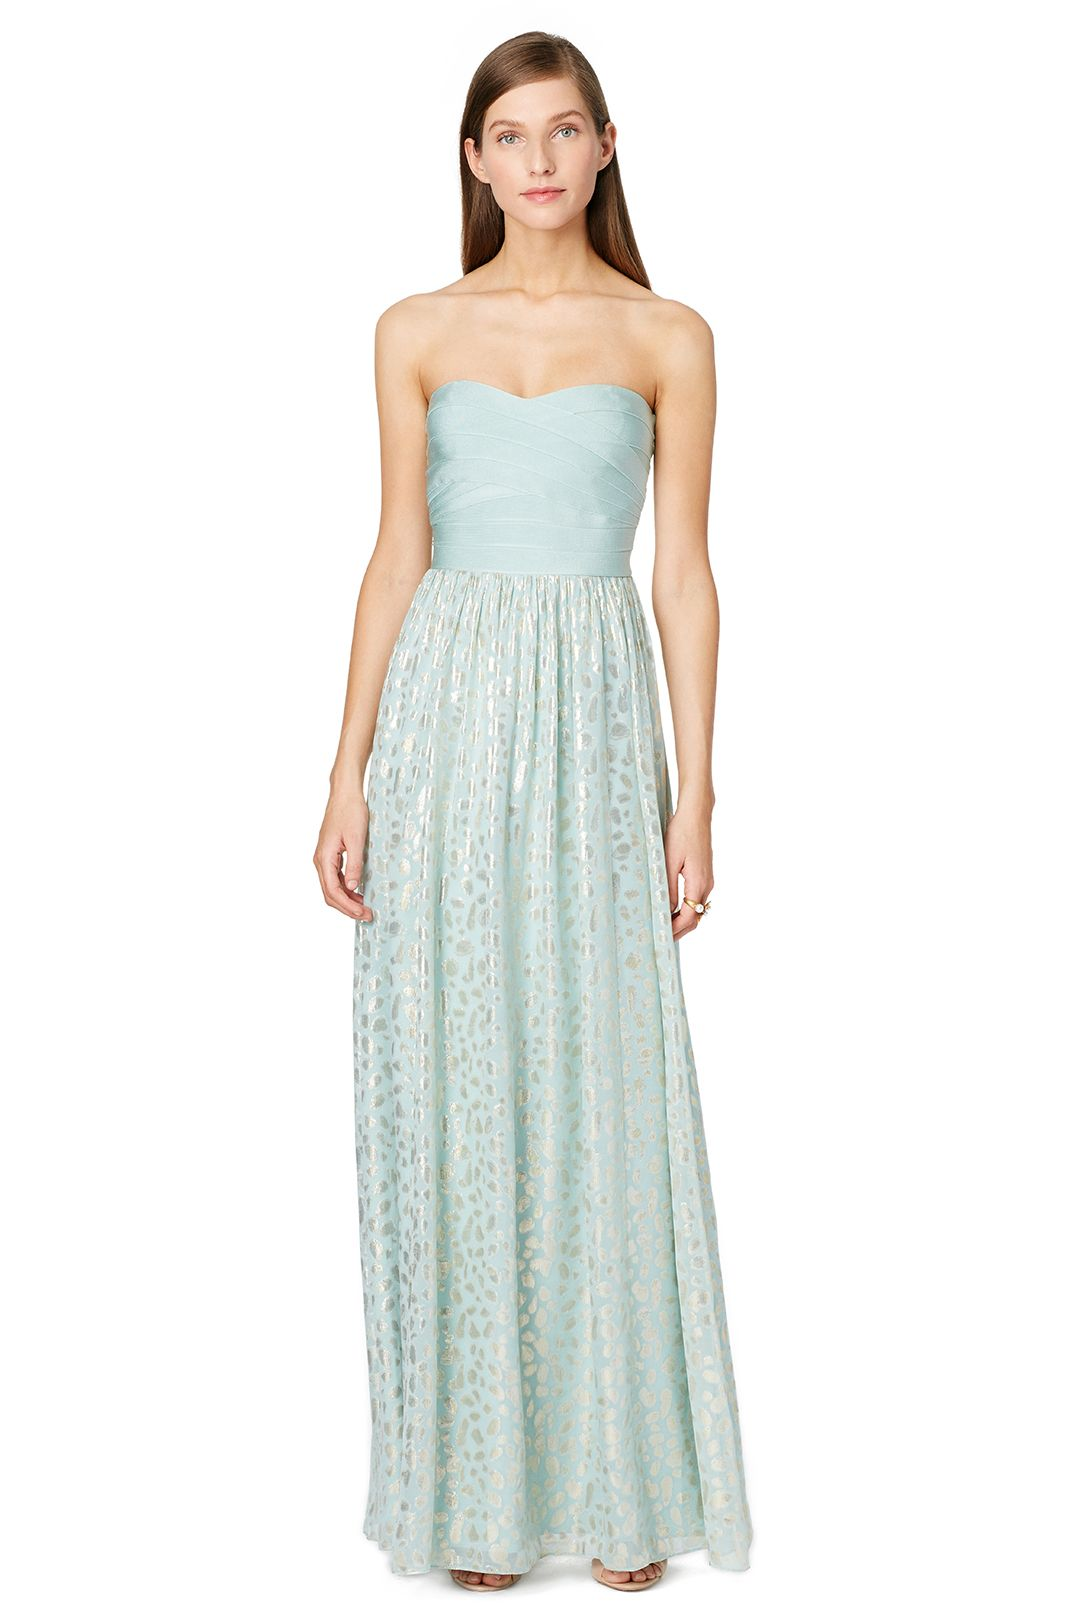 Erin erin fetherston mint mosaic maxi dress prom pinterest